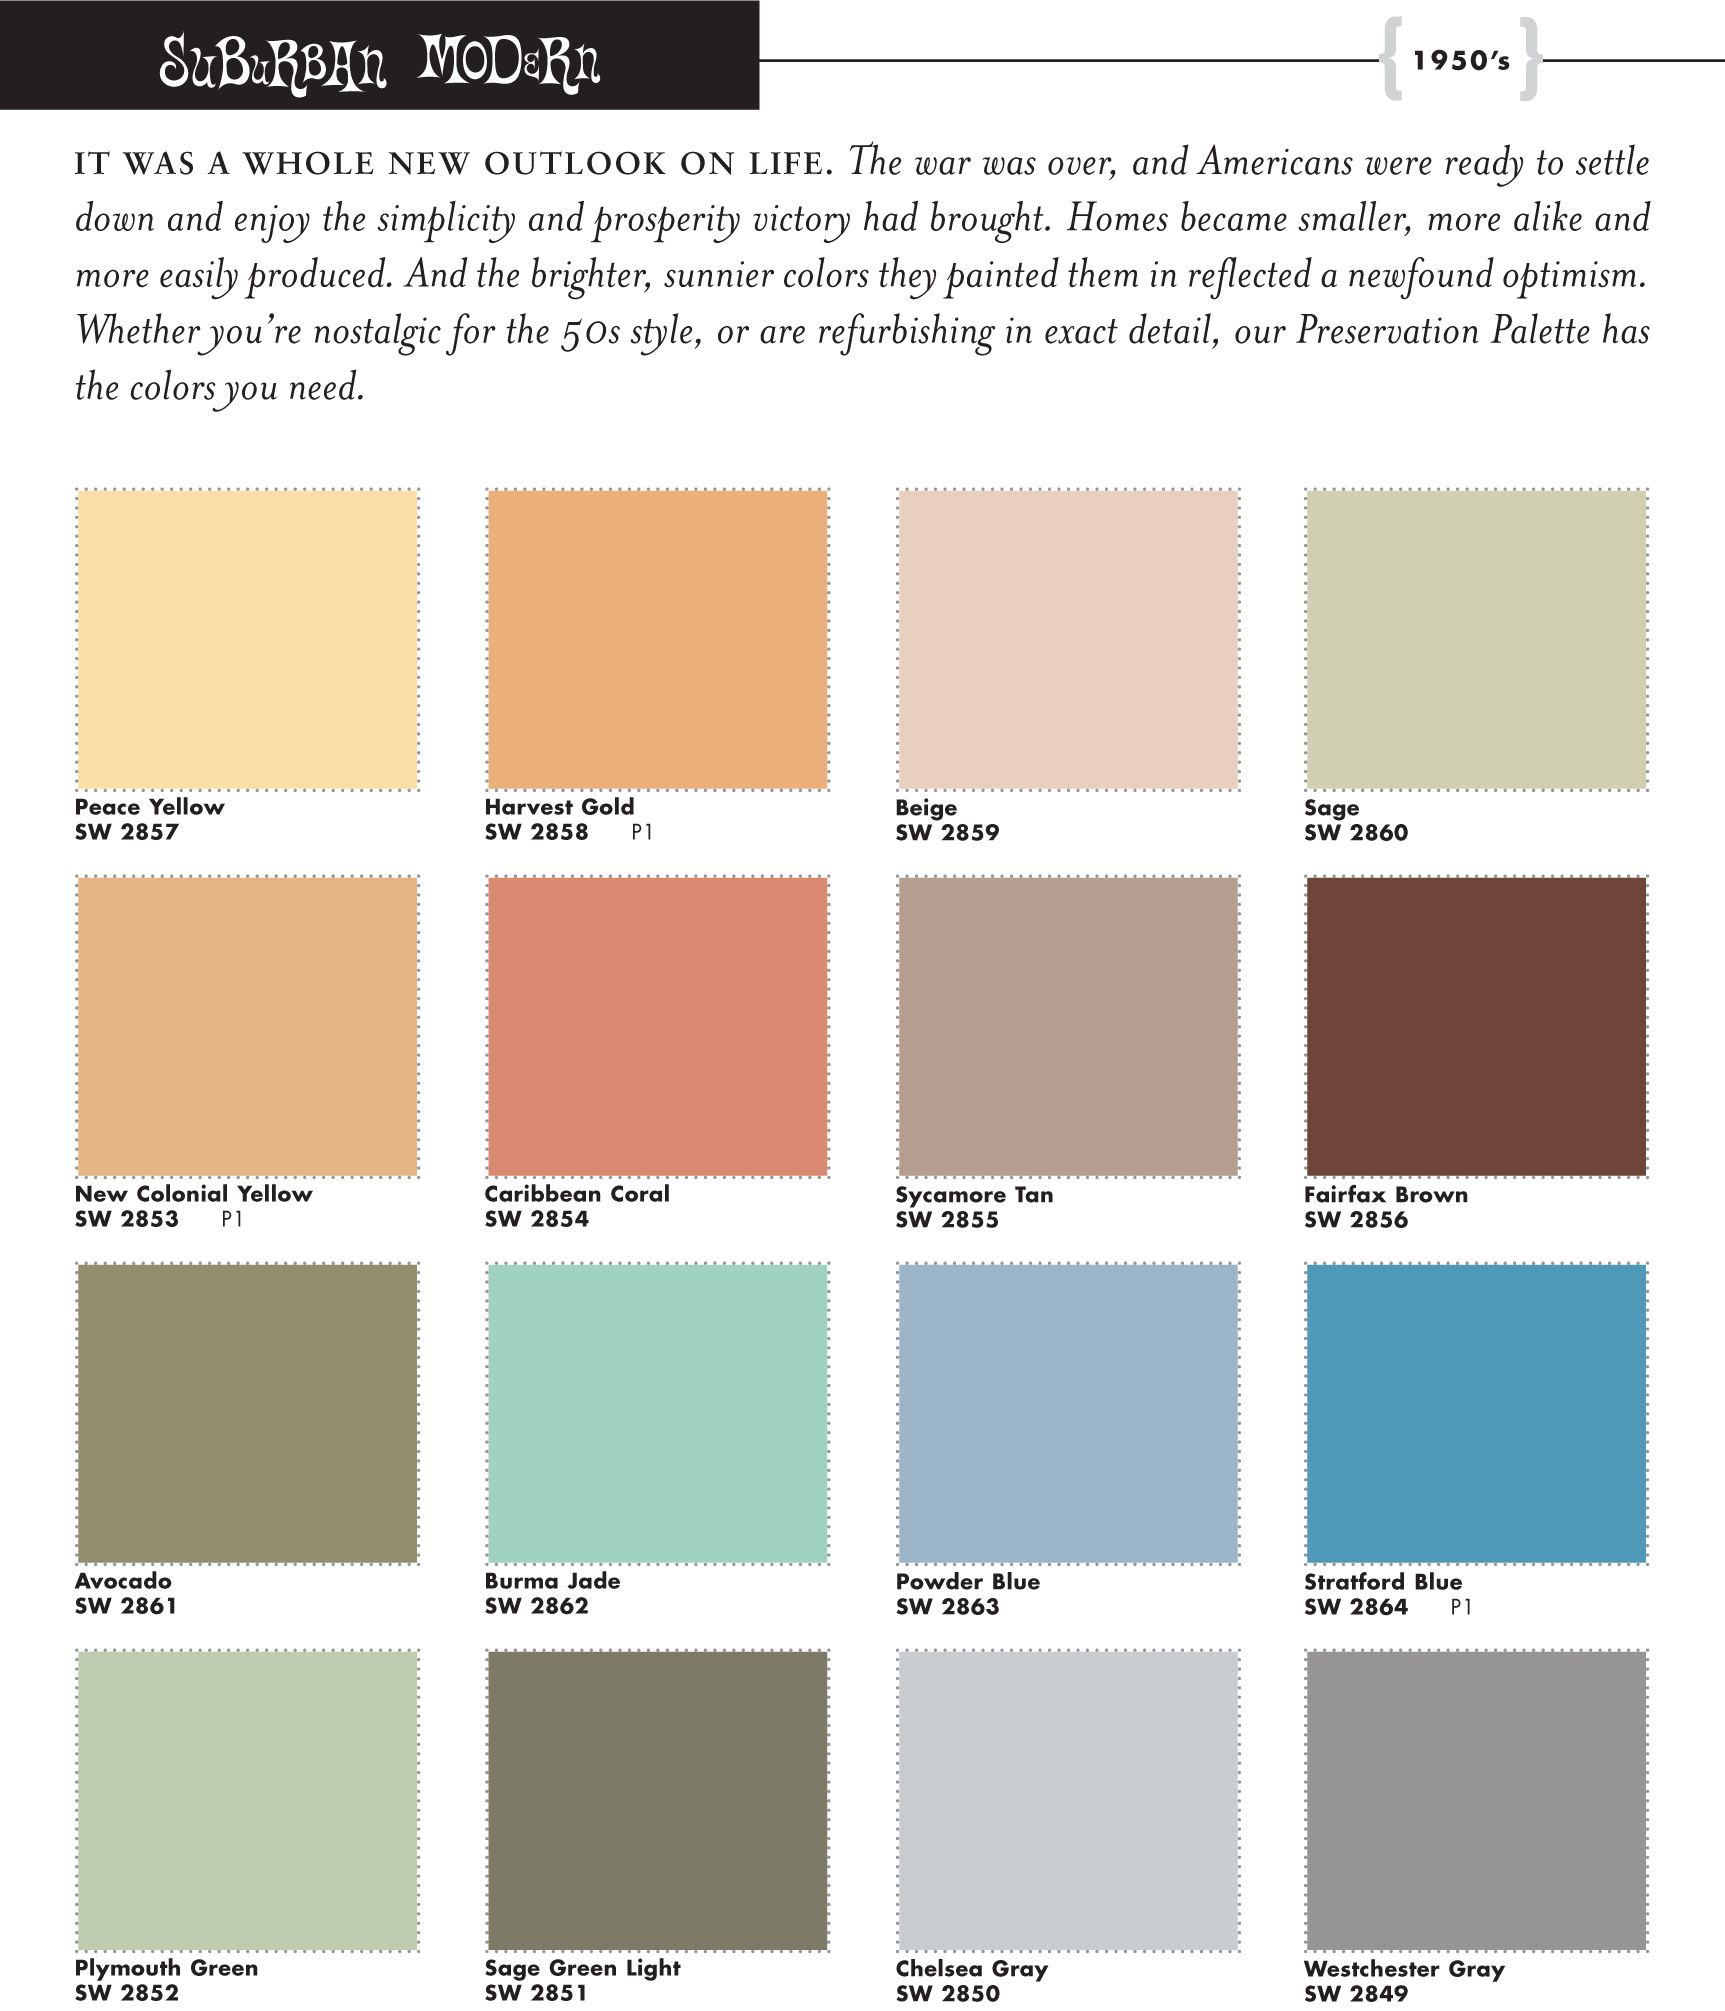 Mid century modern exterior house colors - Sherwin Williams 1950s Color Palette